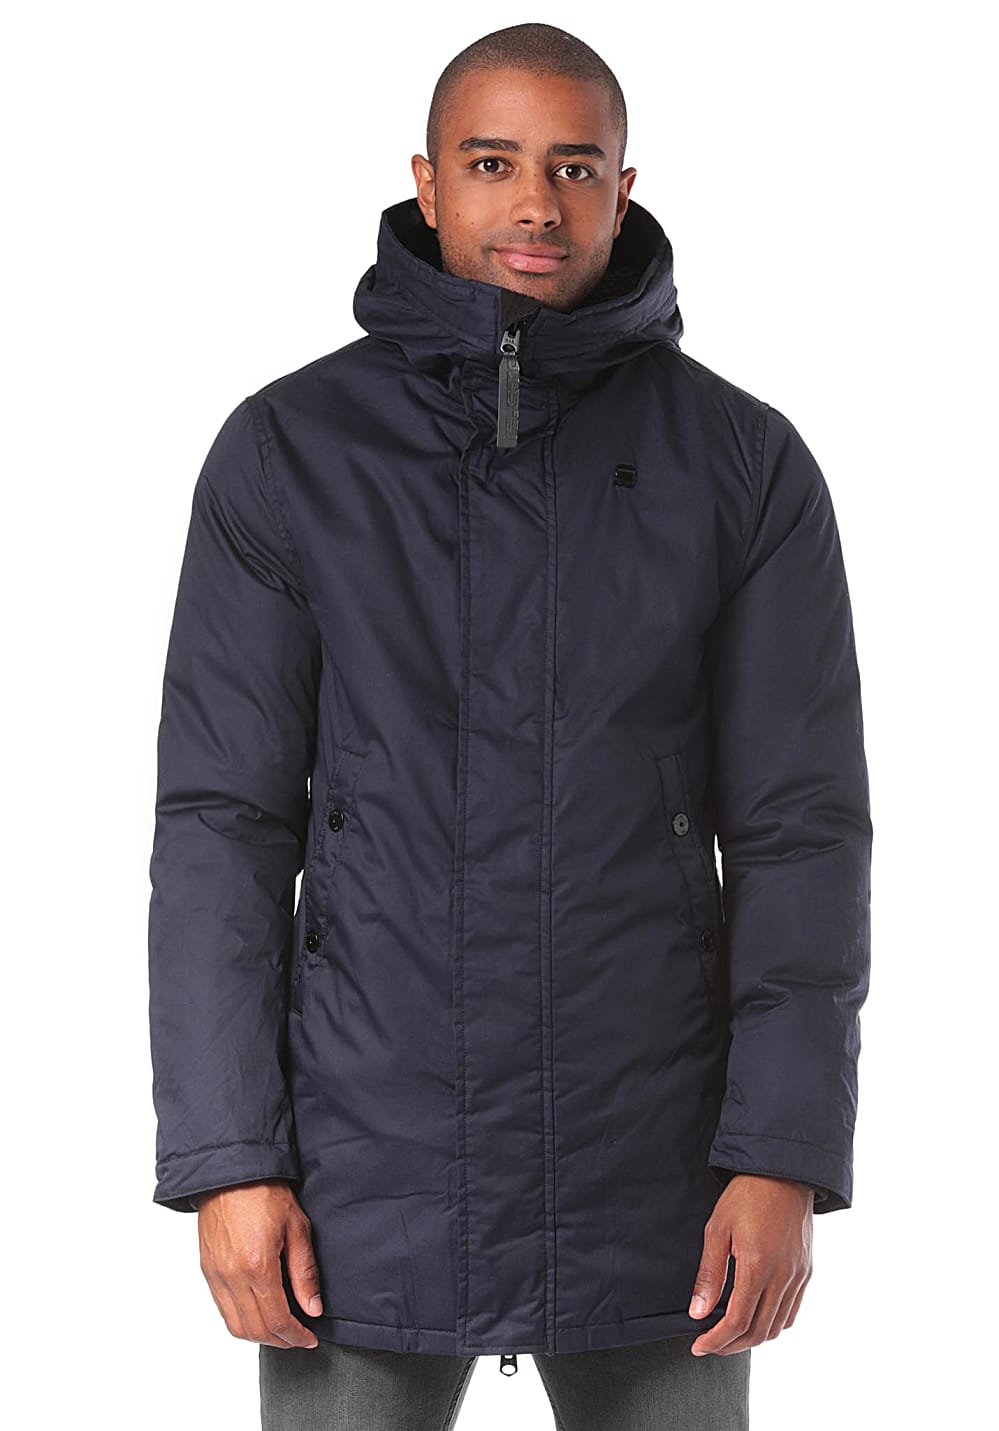 G-STAR RAW Whistler Strett Teddy - Mantel für Herren Blau